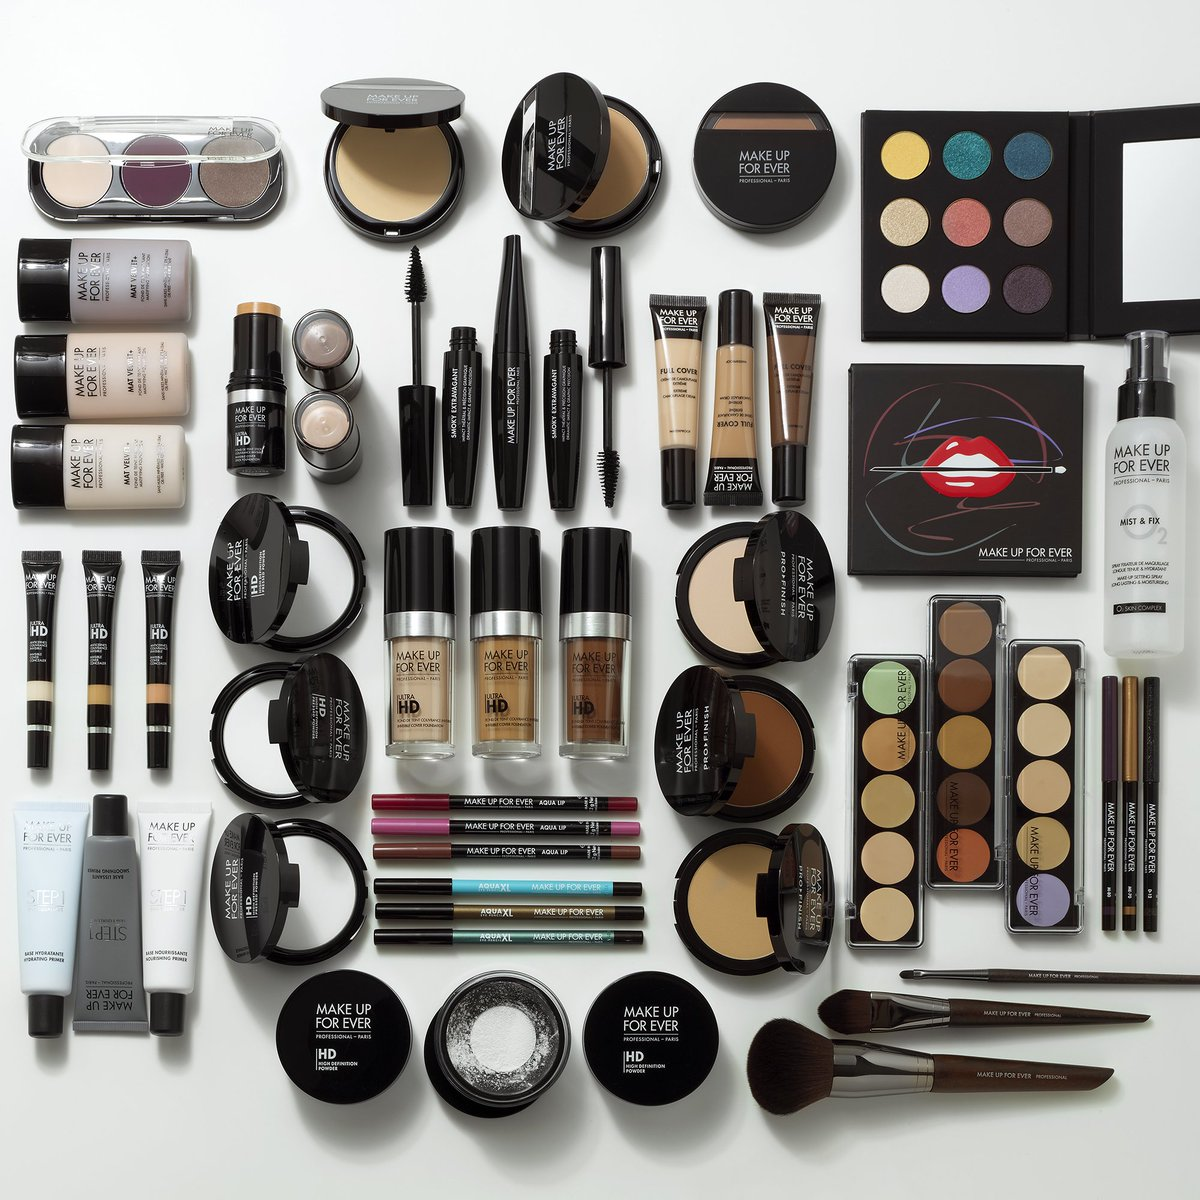 Just a FEW of our favorite things! RT if one of these is your #MAKEUPFOREVER fave! #makeupjunkie #makeup https://t.co/STZONE32pN